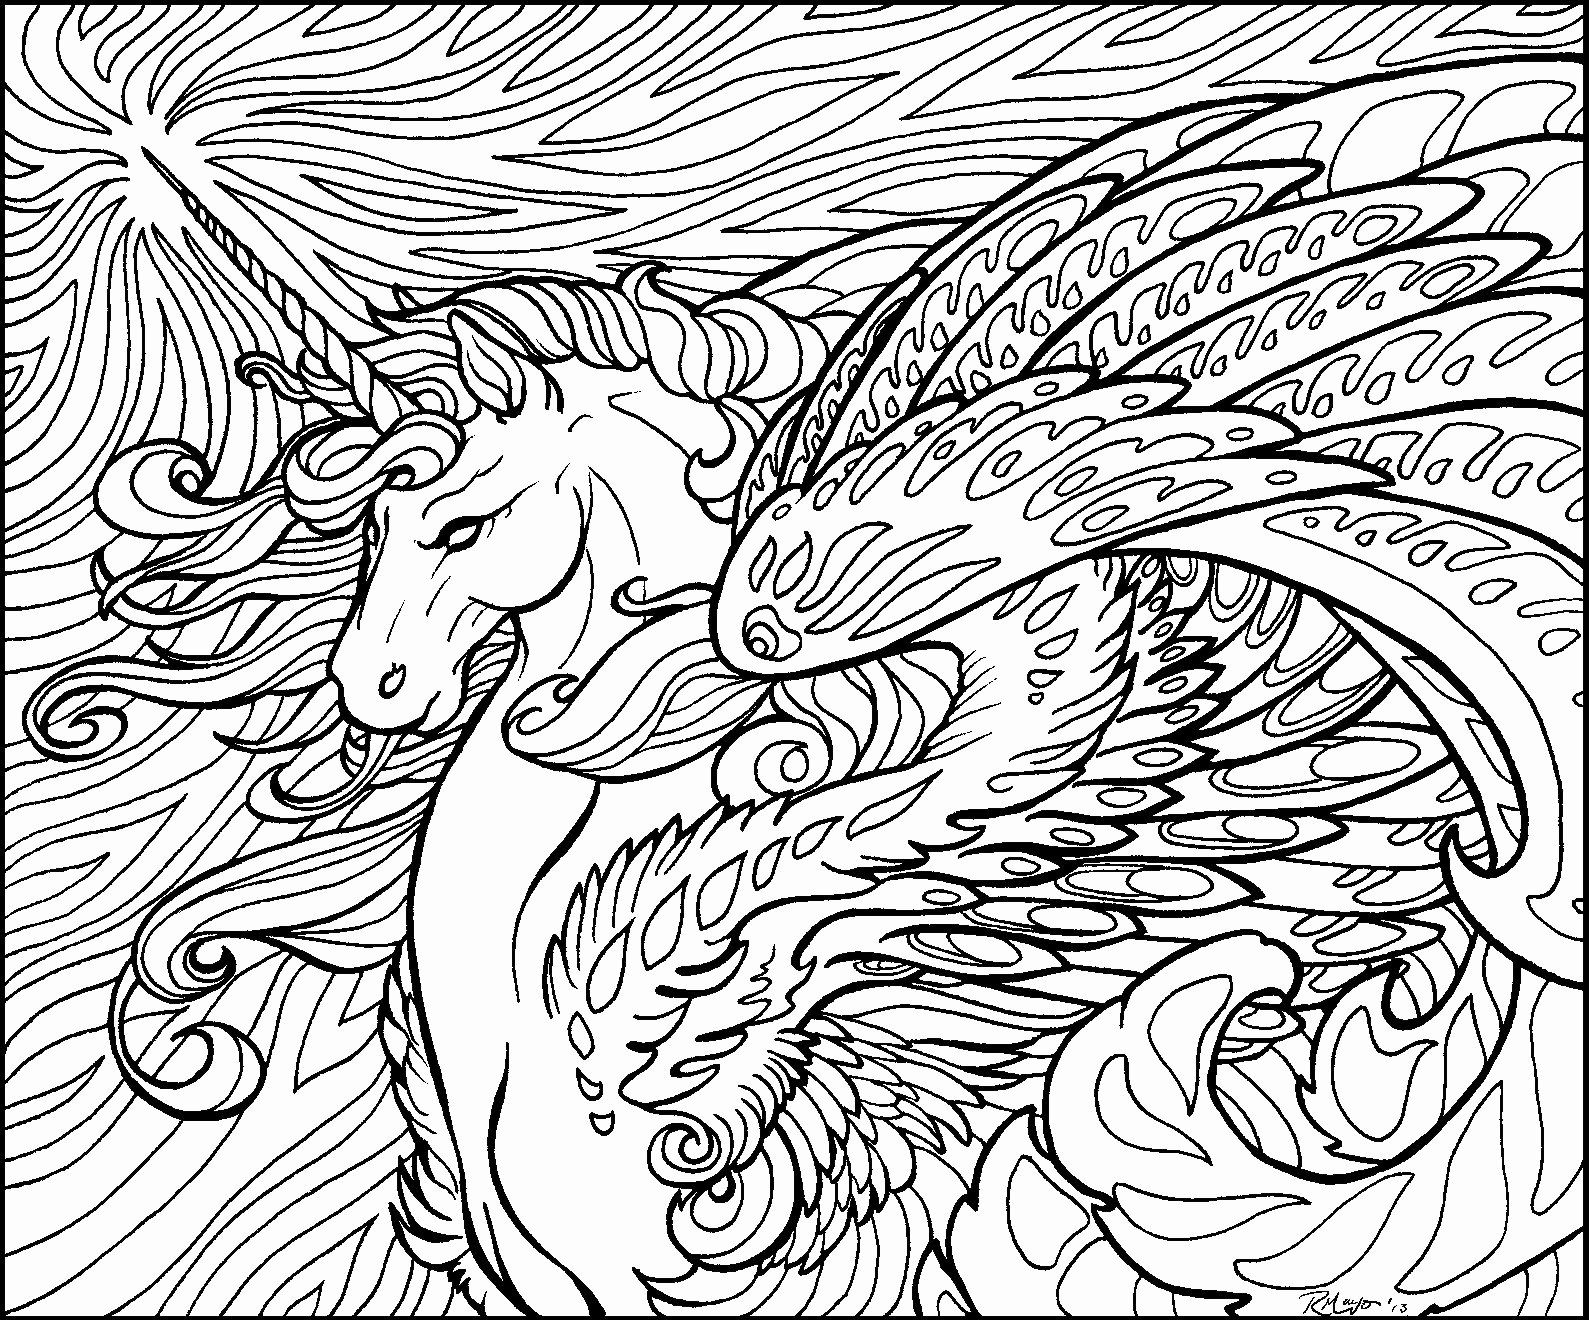 Dragons Printable Coloring Pages Luxury Detailed Dragon Coloring Pages For Adults Horse Coloring Pages Dragon Coloring Page Animal Coloring Pages